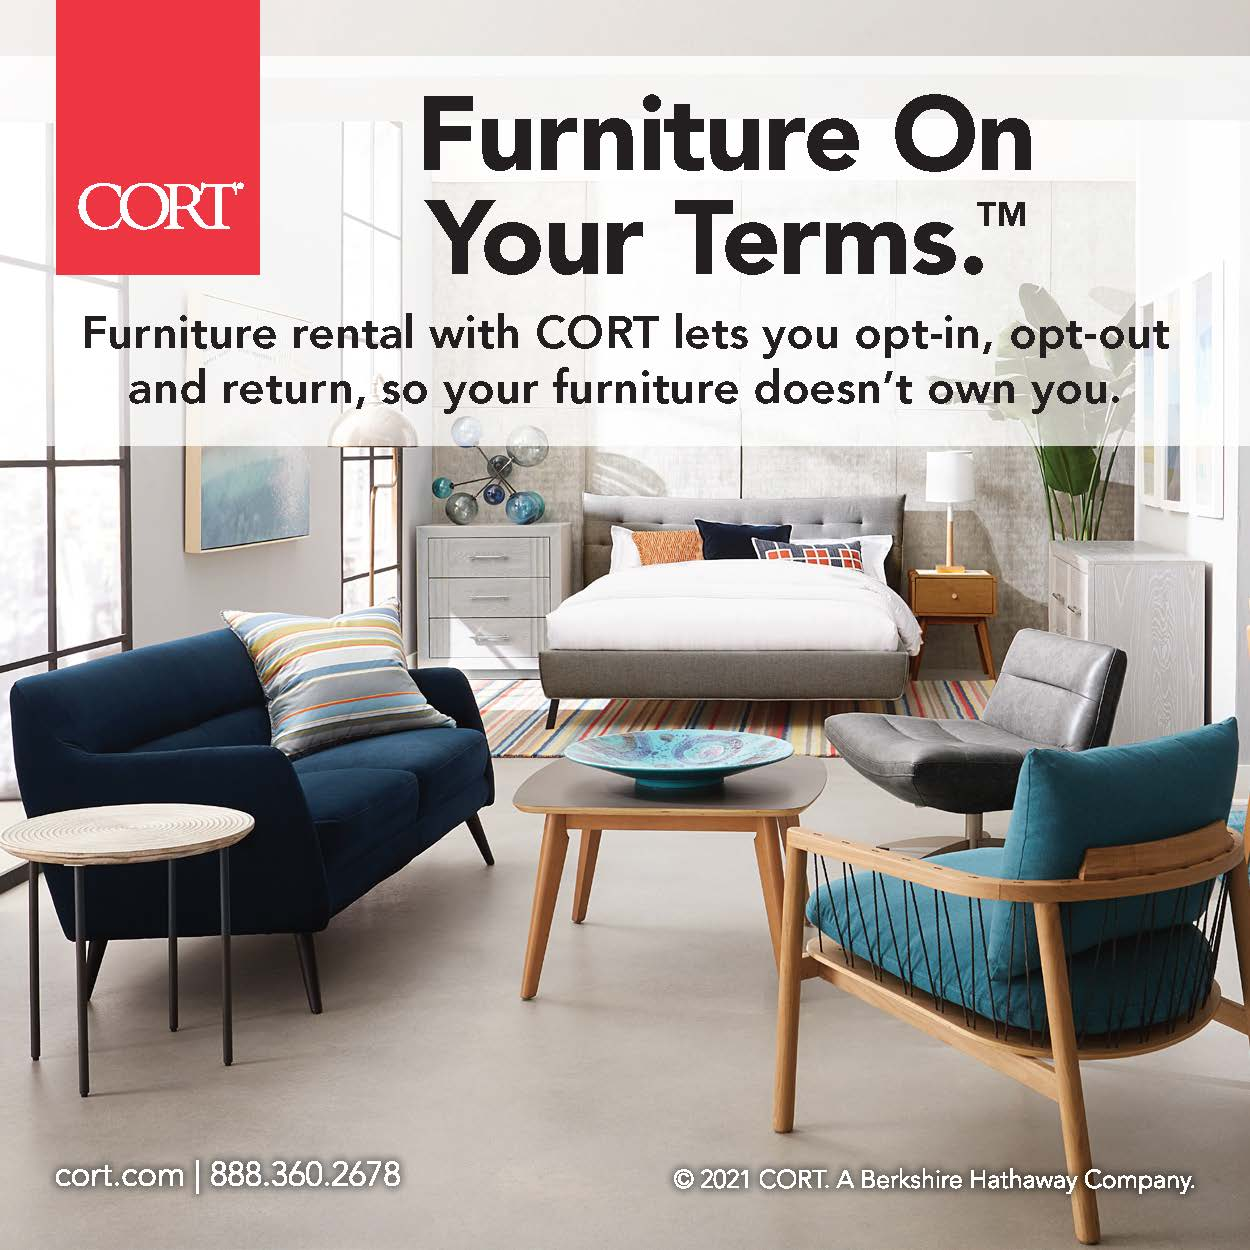 Furniture on your terms Ad